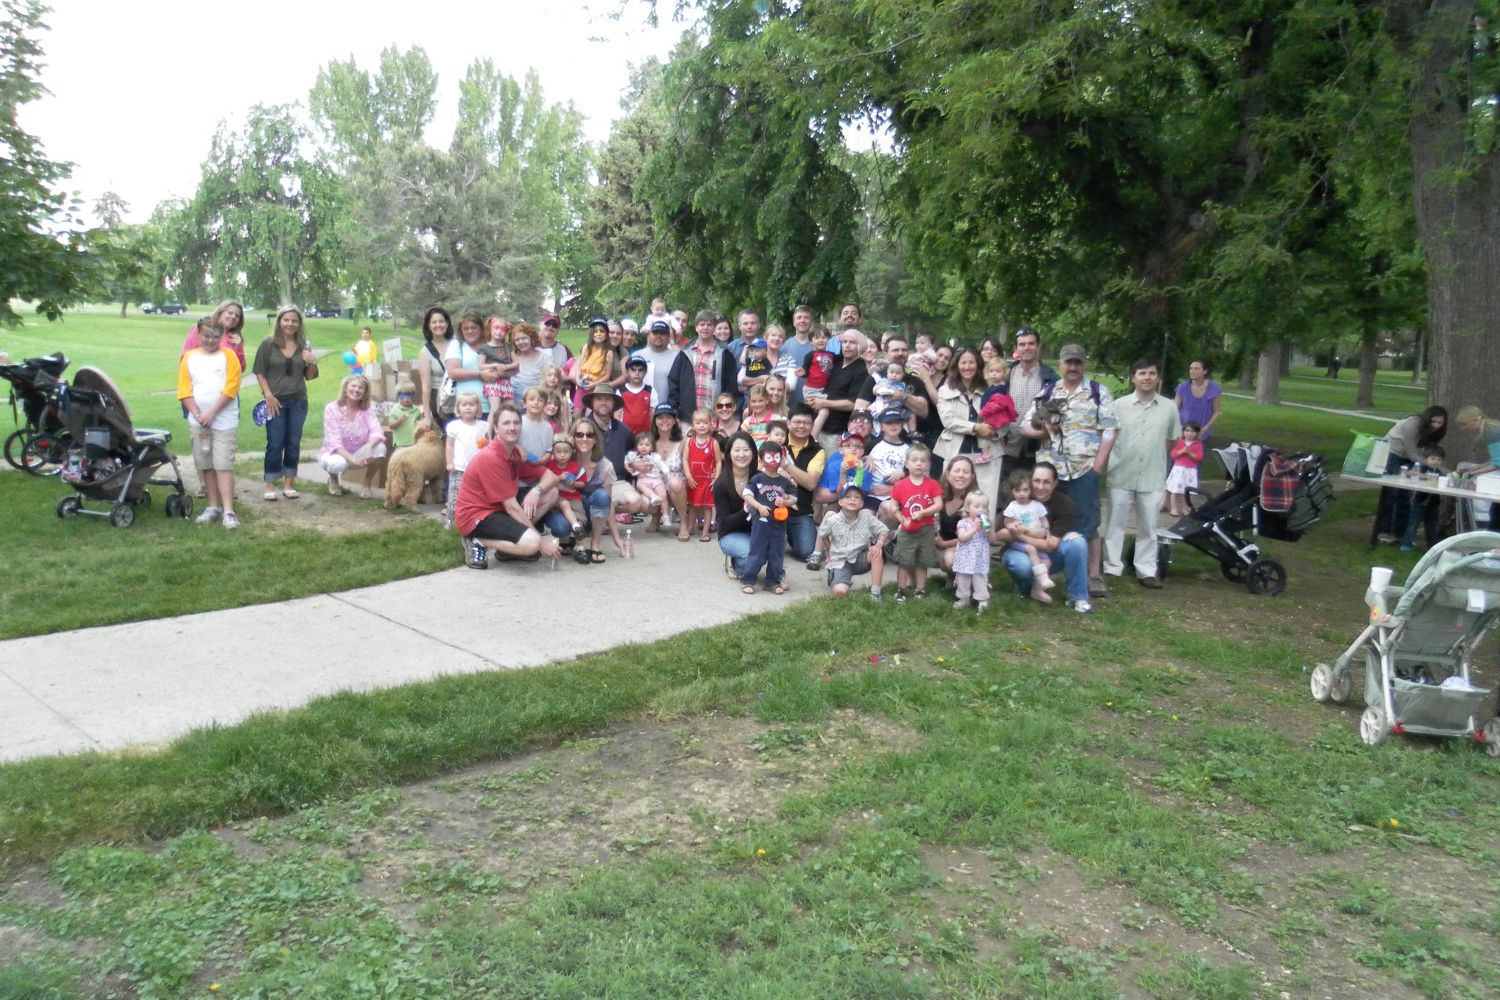 global list of surgeons ear community 2011 and 2012 ear community summer family picnic photos